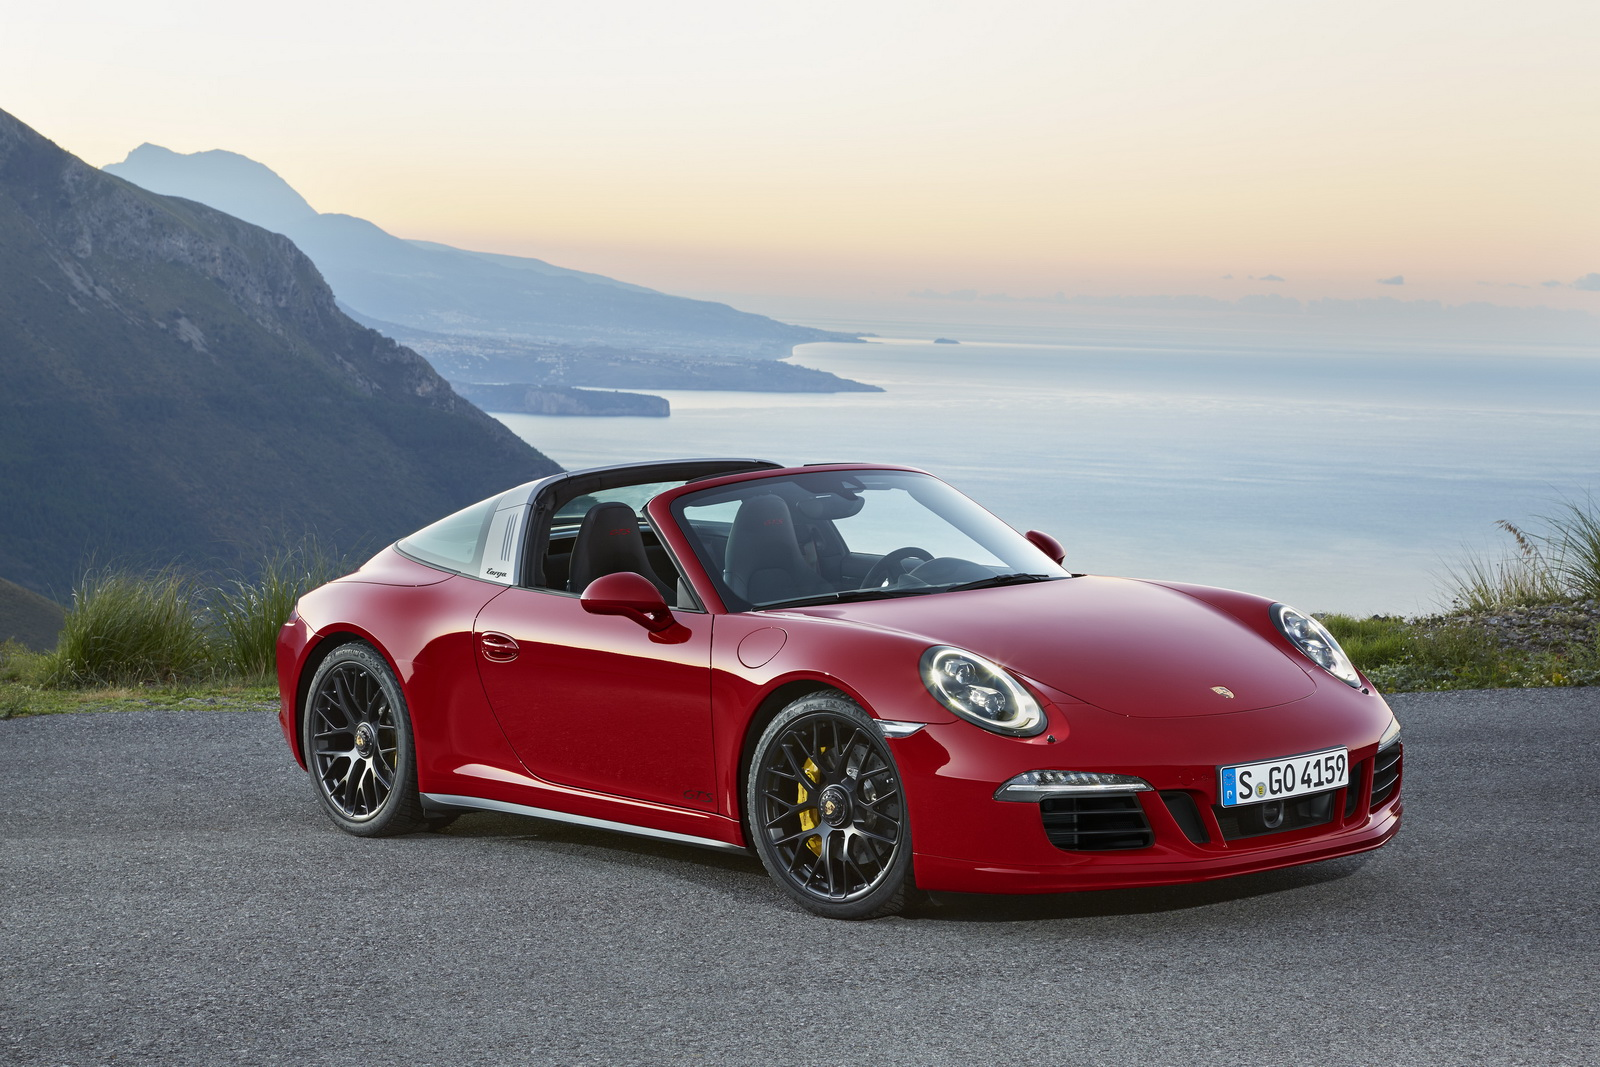 Porsche 911 Targa 4 Gts World Premiere At 2015 Naias